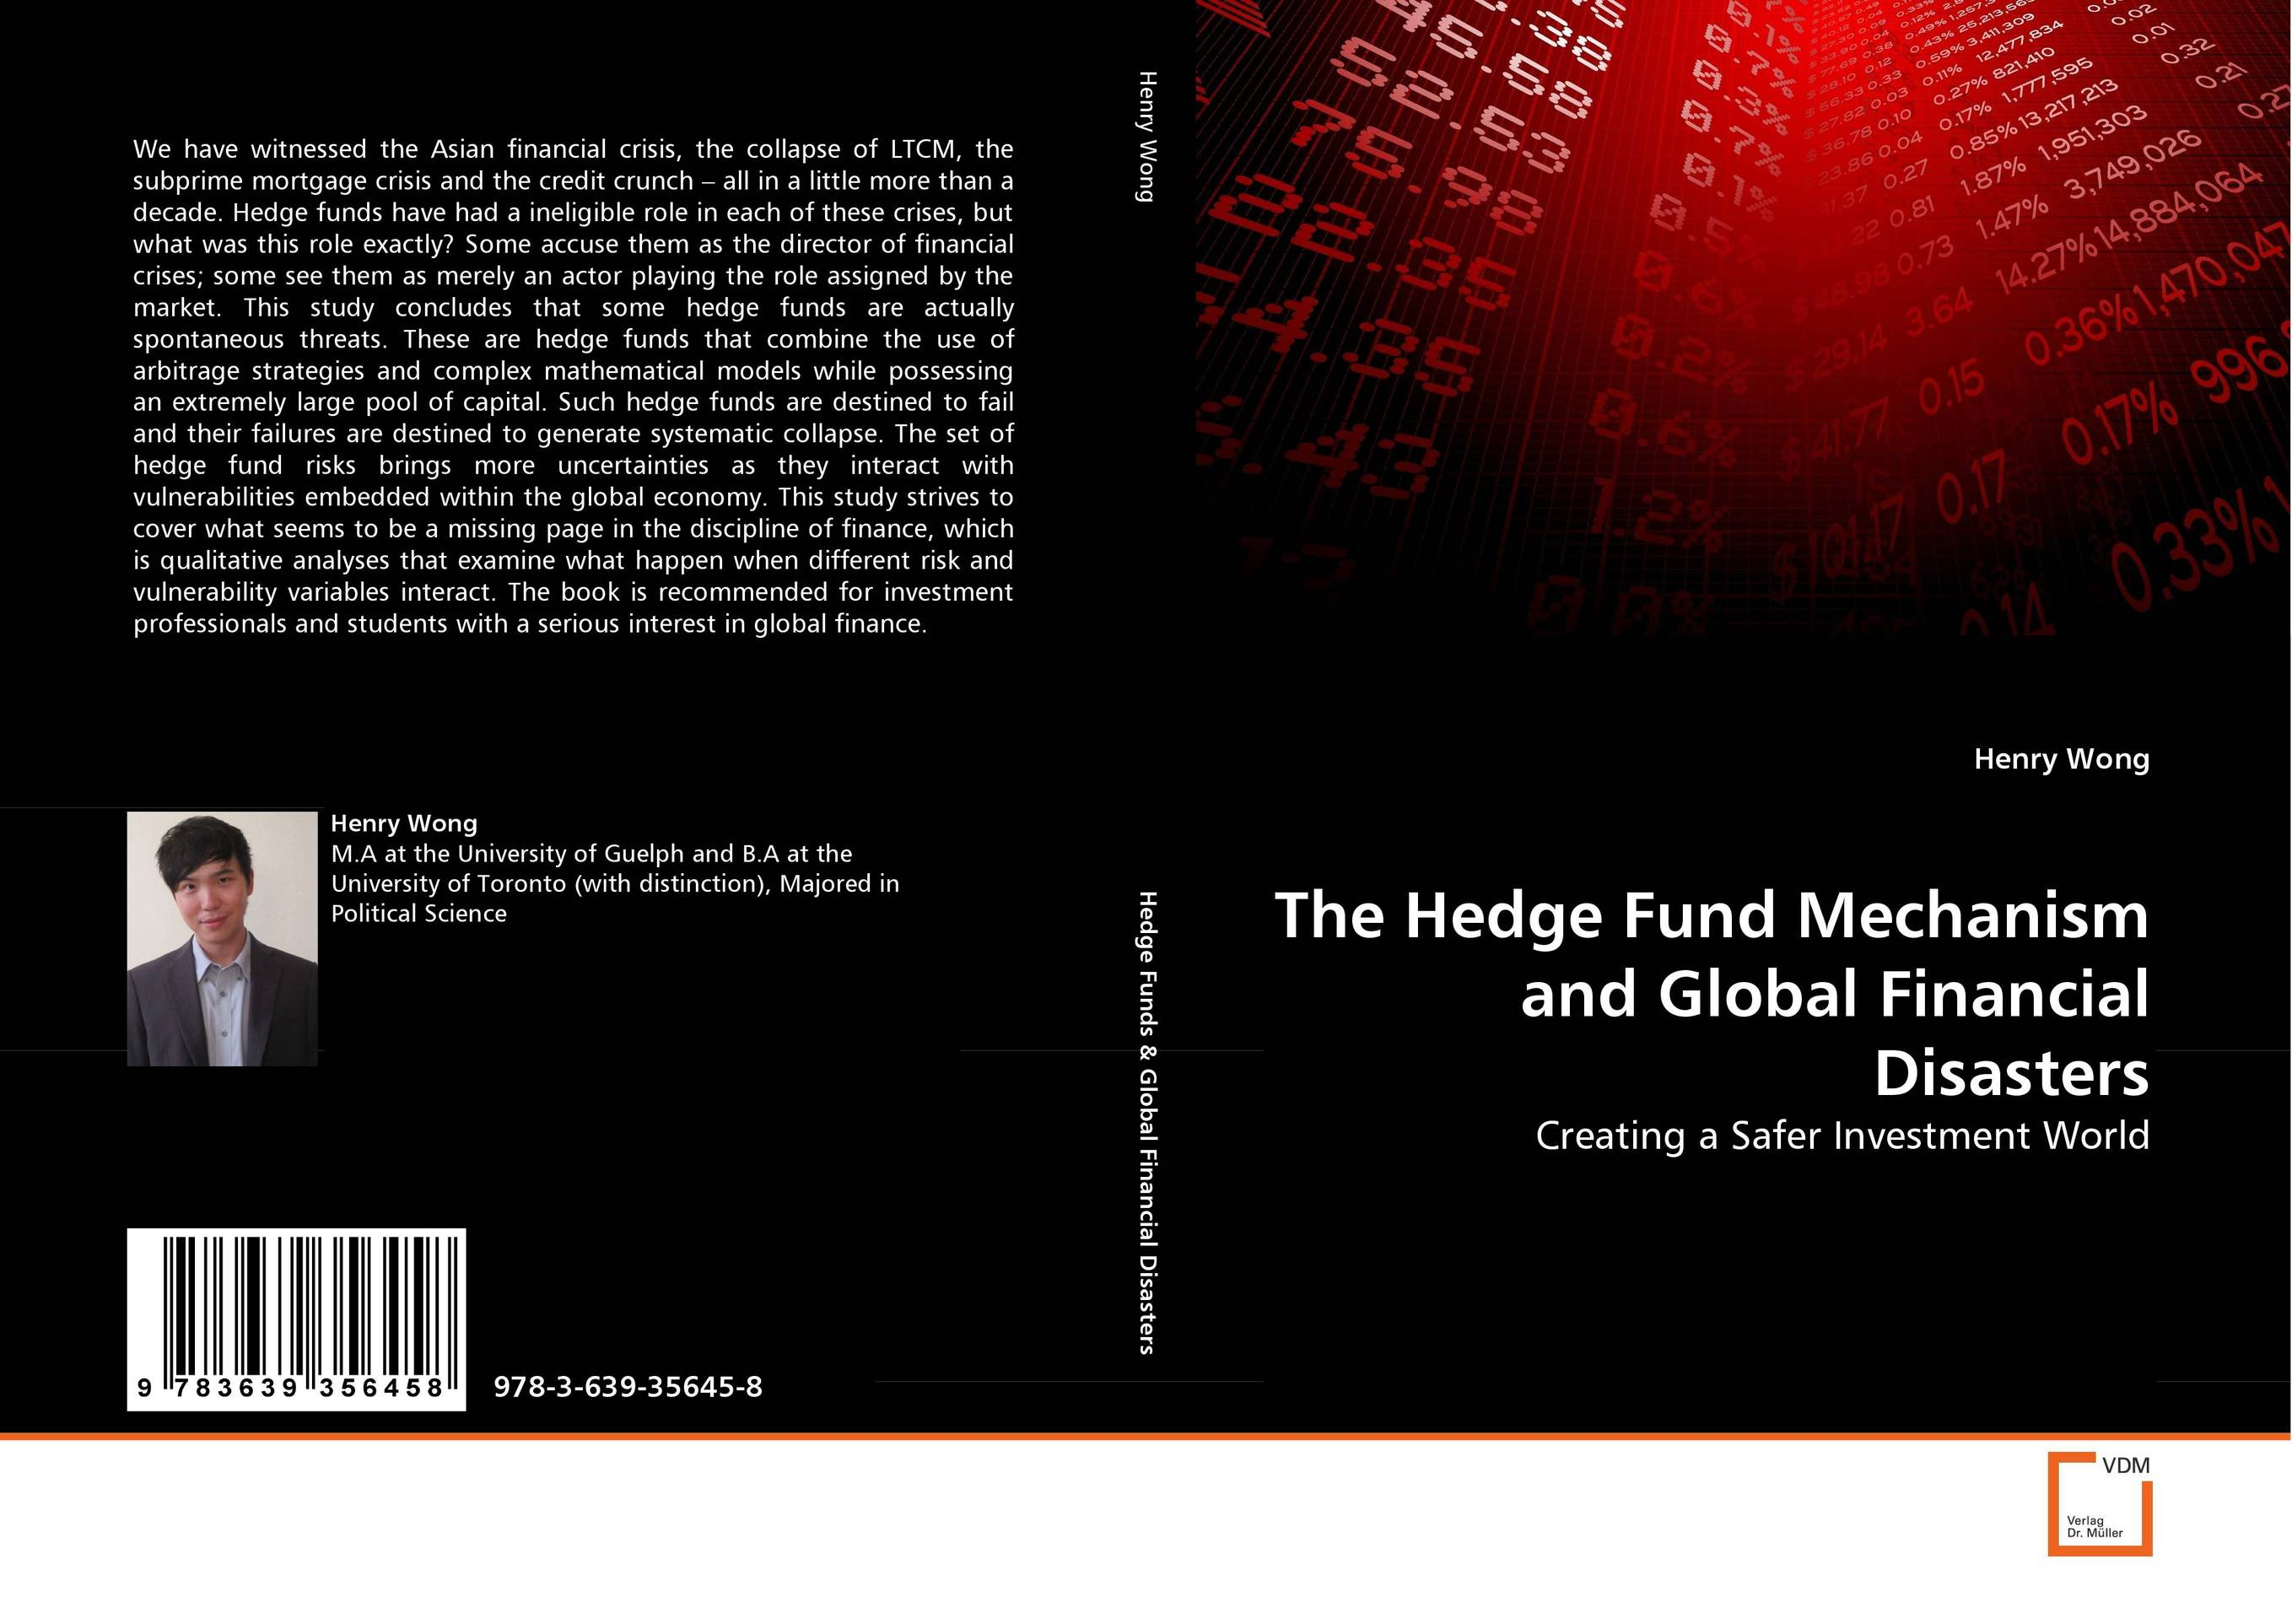 The Hedge Fund Mechanism and Global Financial Disasters sean casterline d investor s passport to hedge fund profits unique investment strategies for today s global capital markets